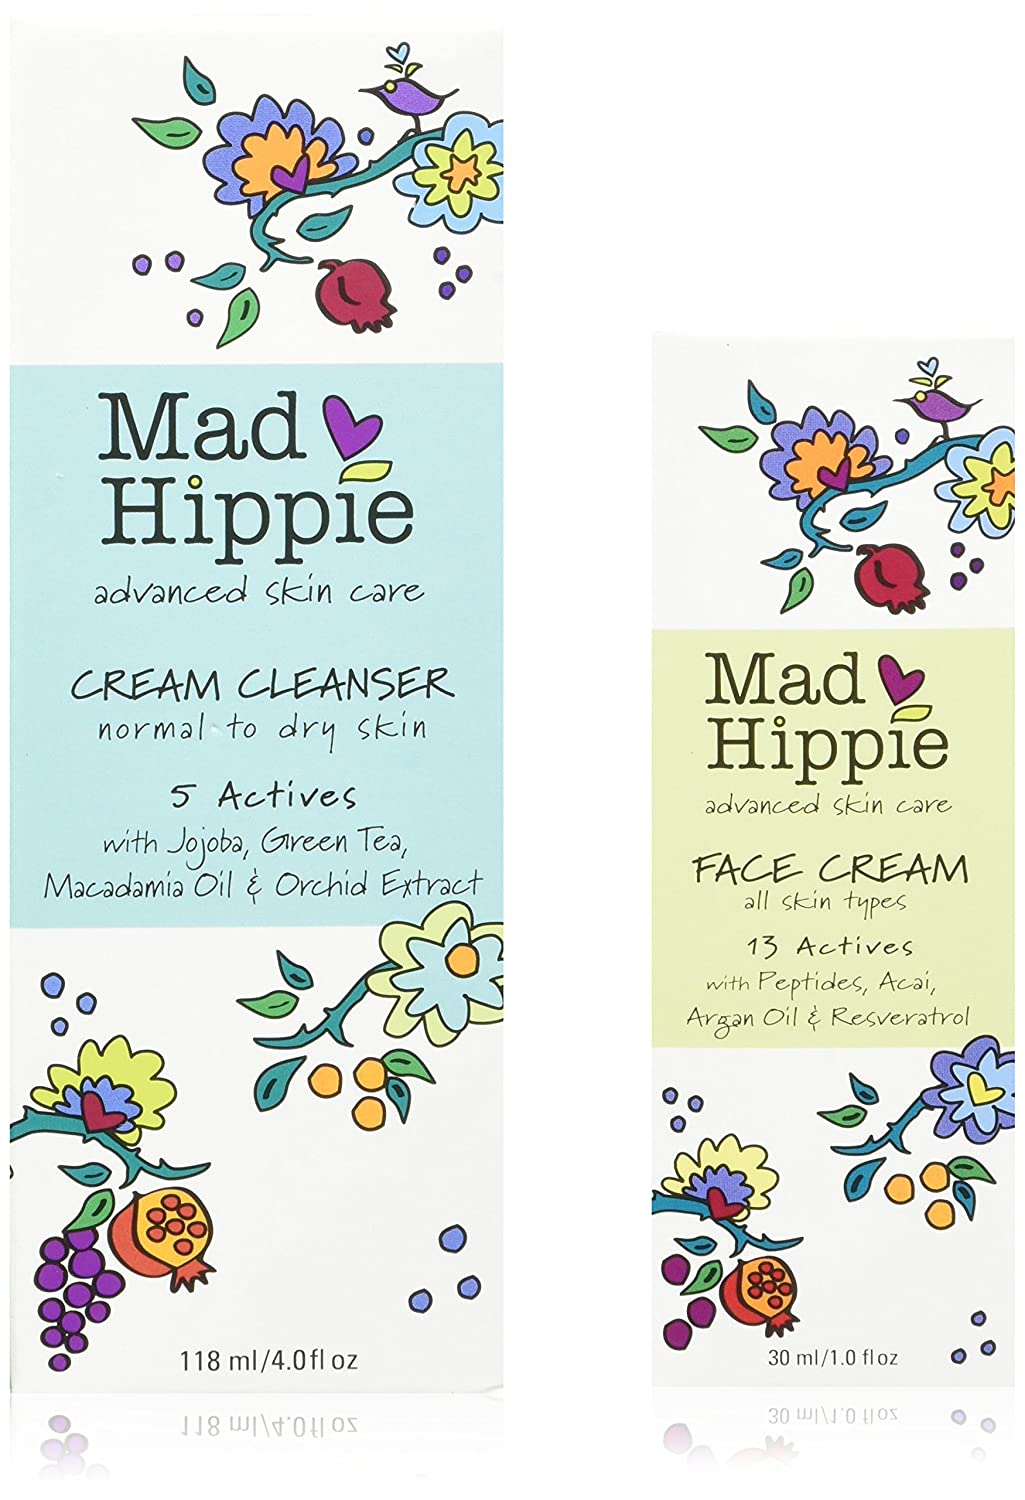 Mad Hippie Facial Cream Cleanser & Anti-Wrinkle Peptide Face Cream Bundle with Squalene, Organic Macadamia, Sesame, Safflower, Argan Oils, and Green Tea Extract, 118 mL and 30 mL